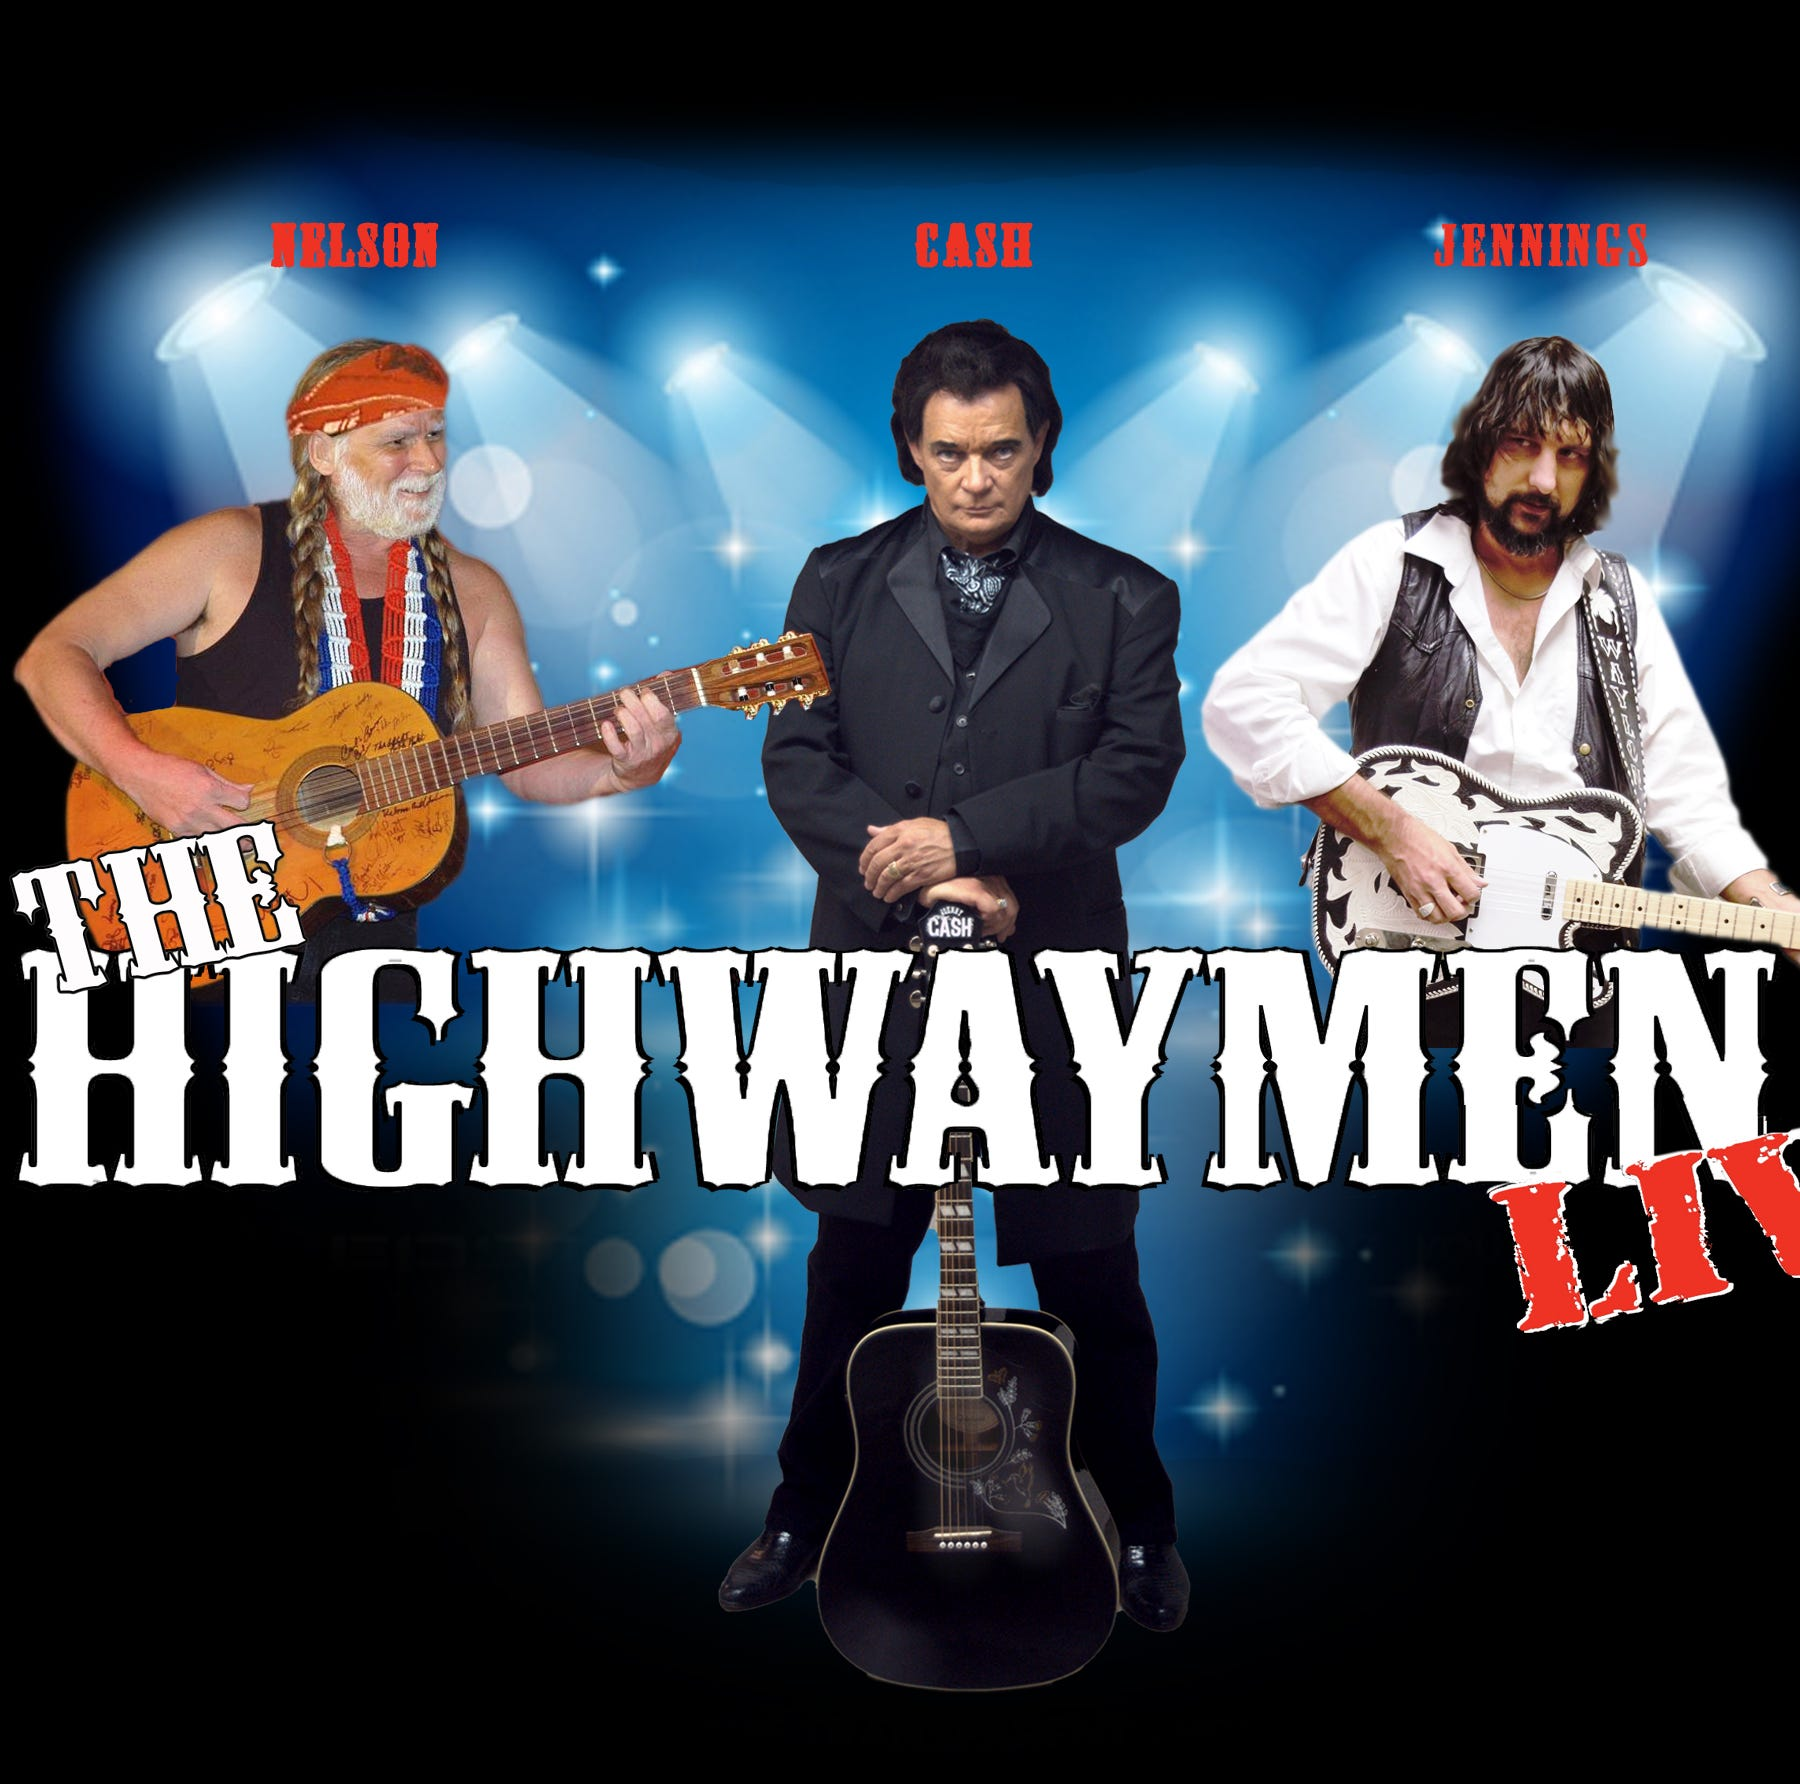 Manitowoc Capitol Civic Centre brings The Highwaymen Live to stage Jan. 26